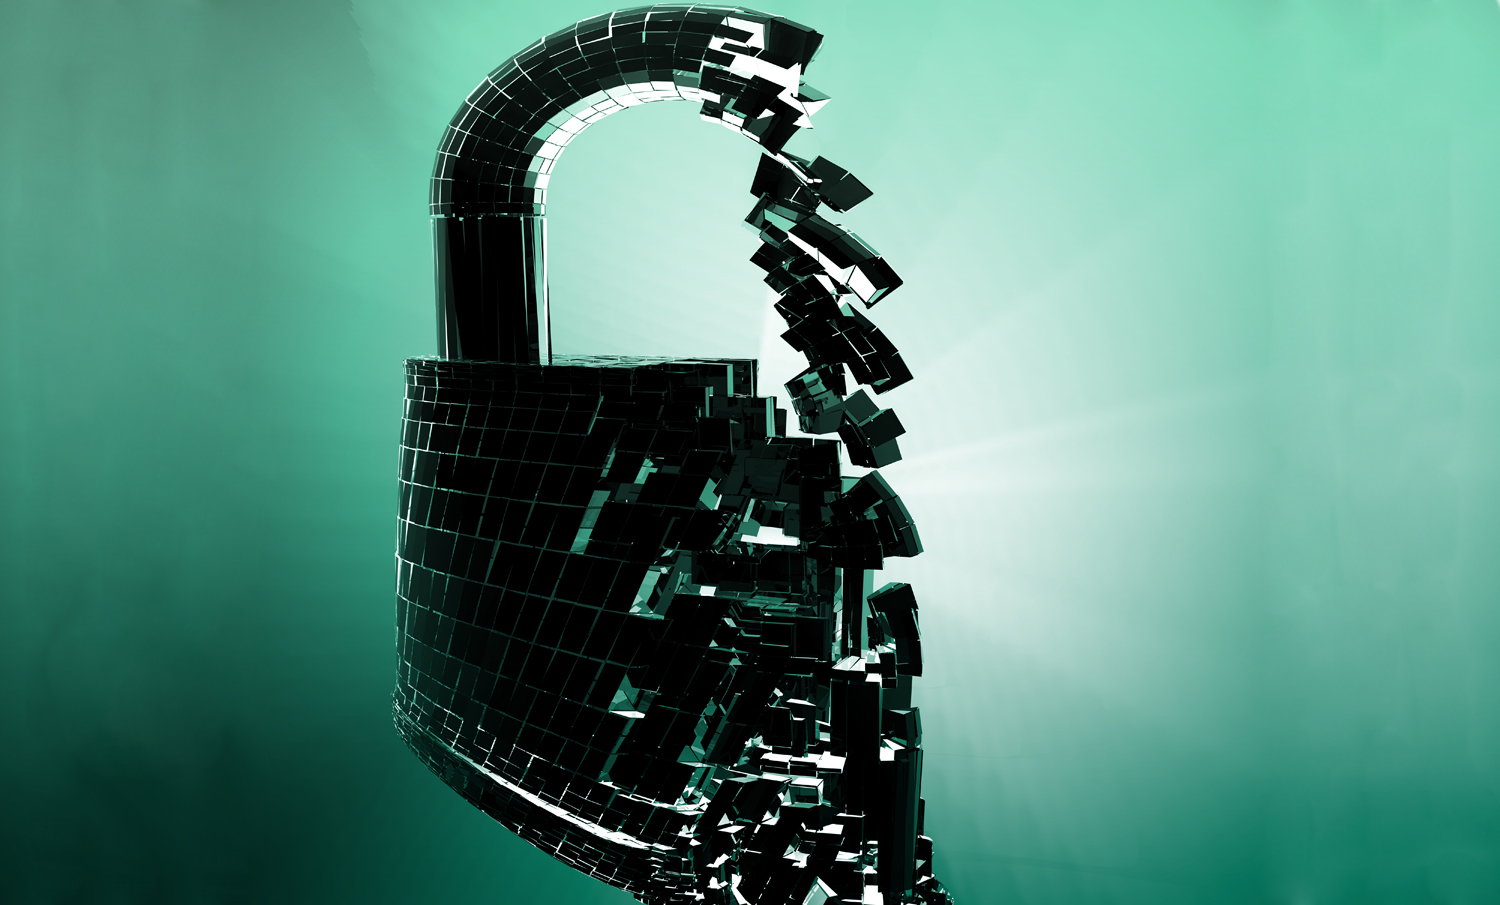 padlock-security-protection-hacking